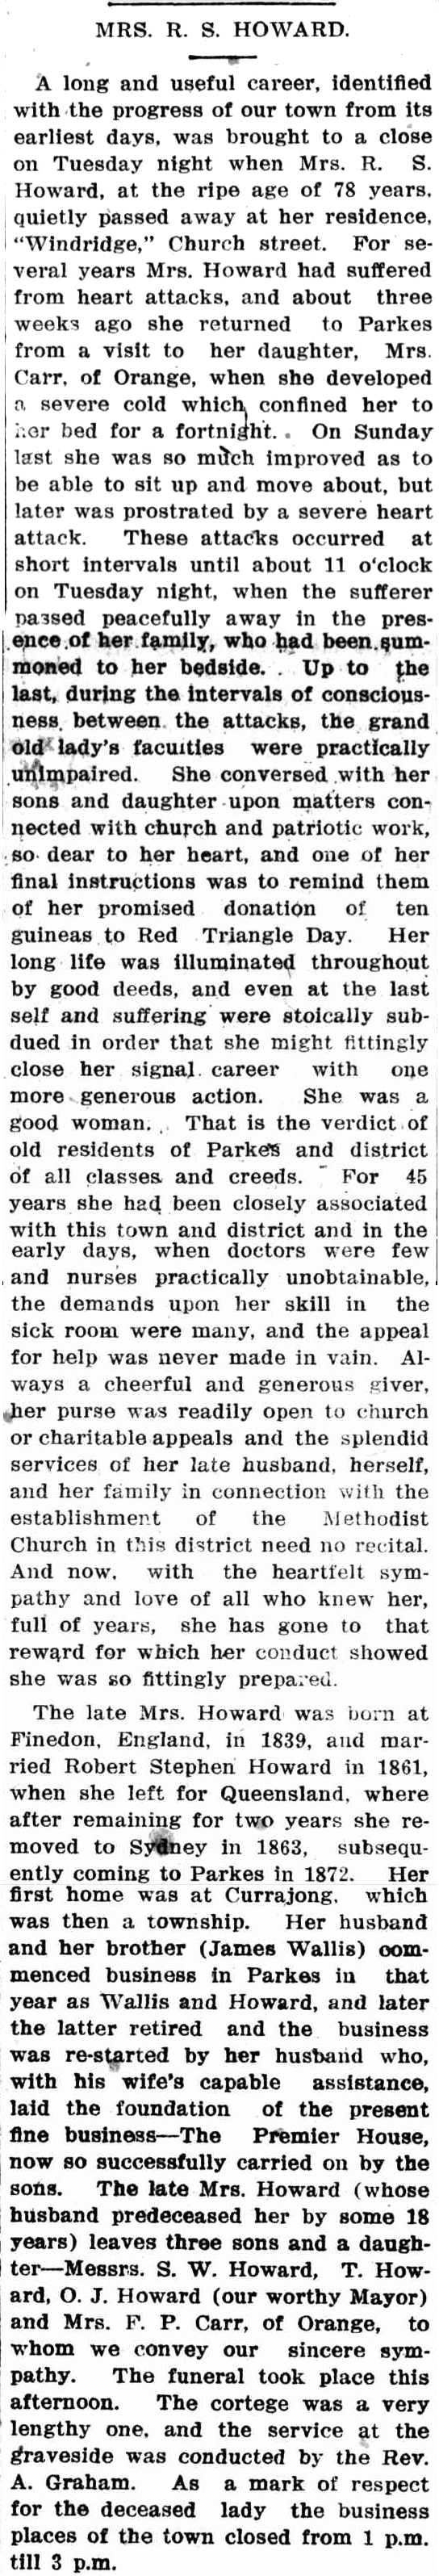 Obituary of Maria Howard, which offers up information and insight into her life and legacy. Source: Western Champion Thursday June 7, 1917 p.17